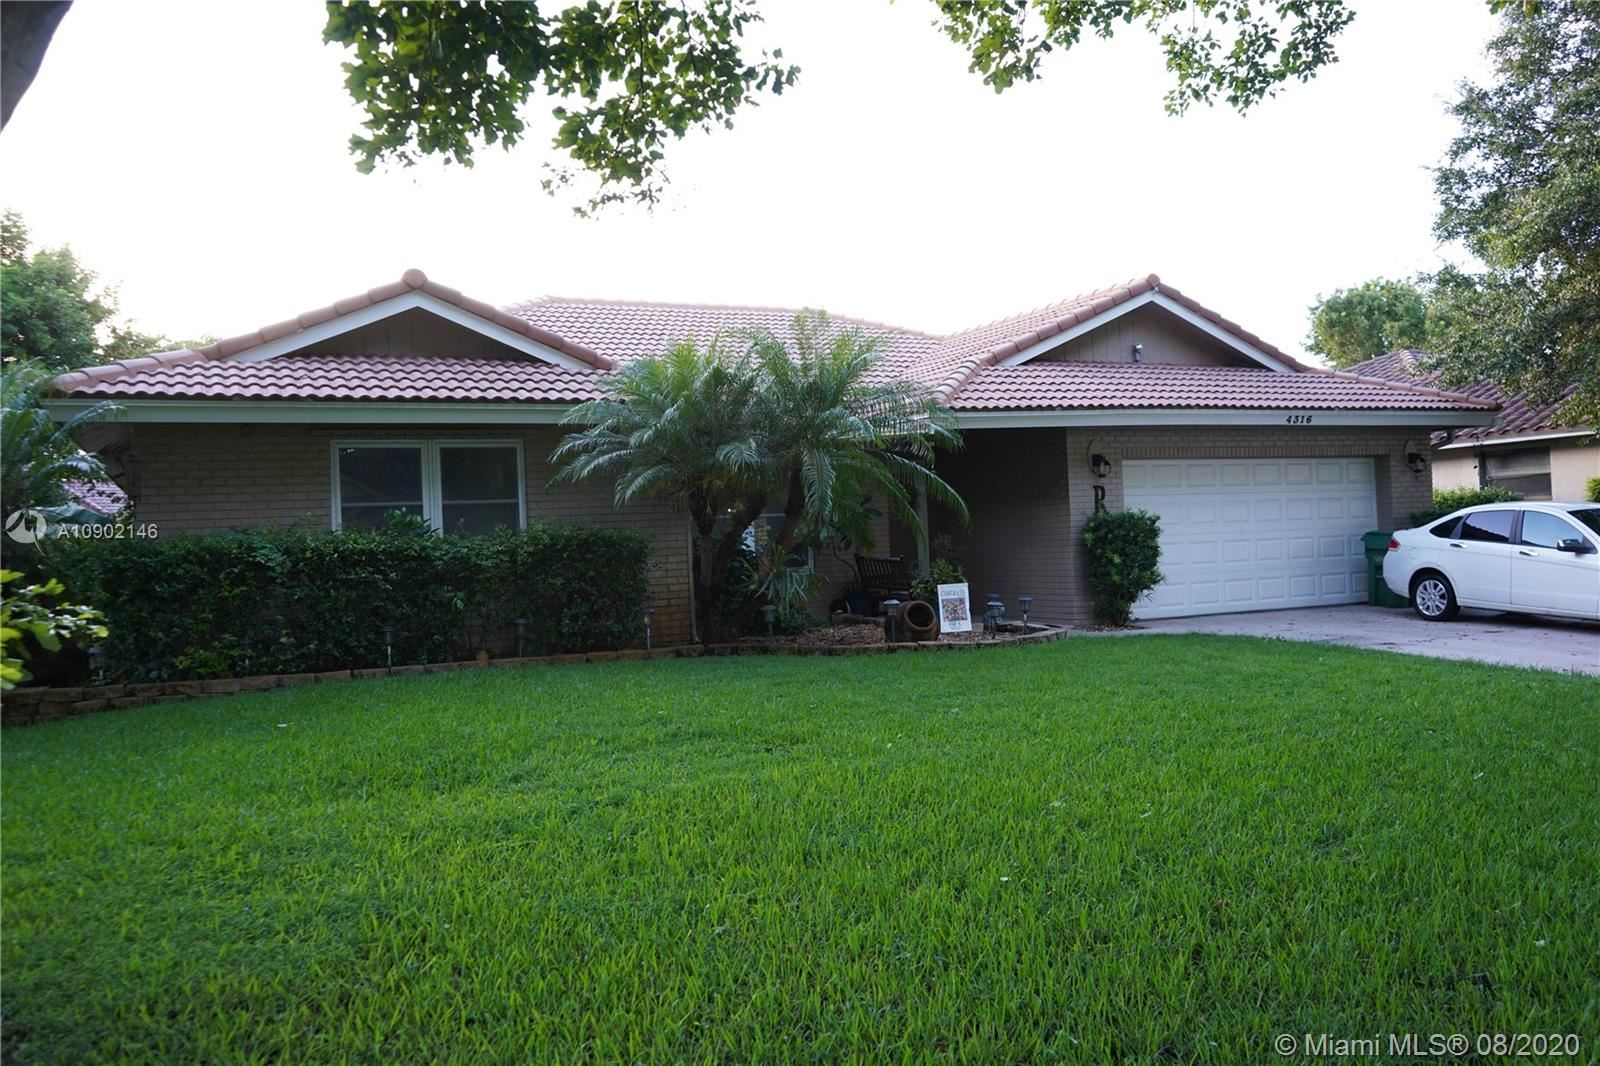 4316 NW 71st Dr, Coral Springs, FL 33065 - #: A10902146